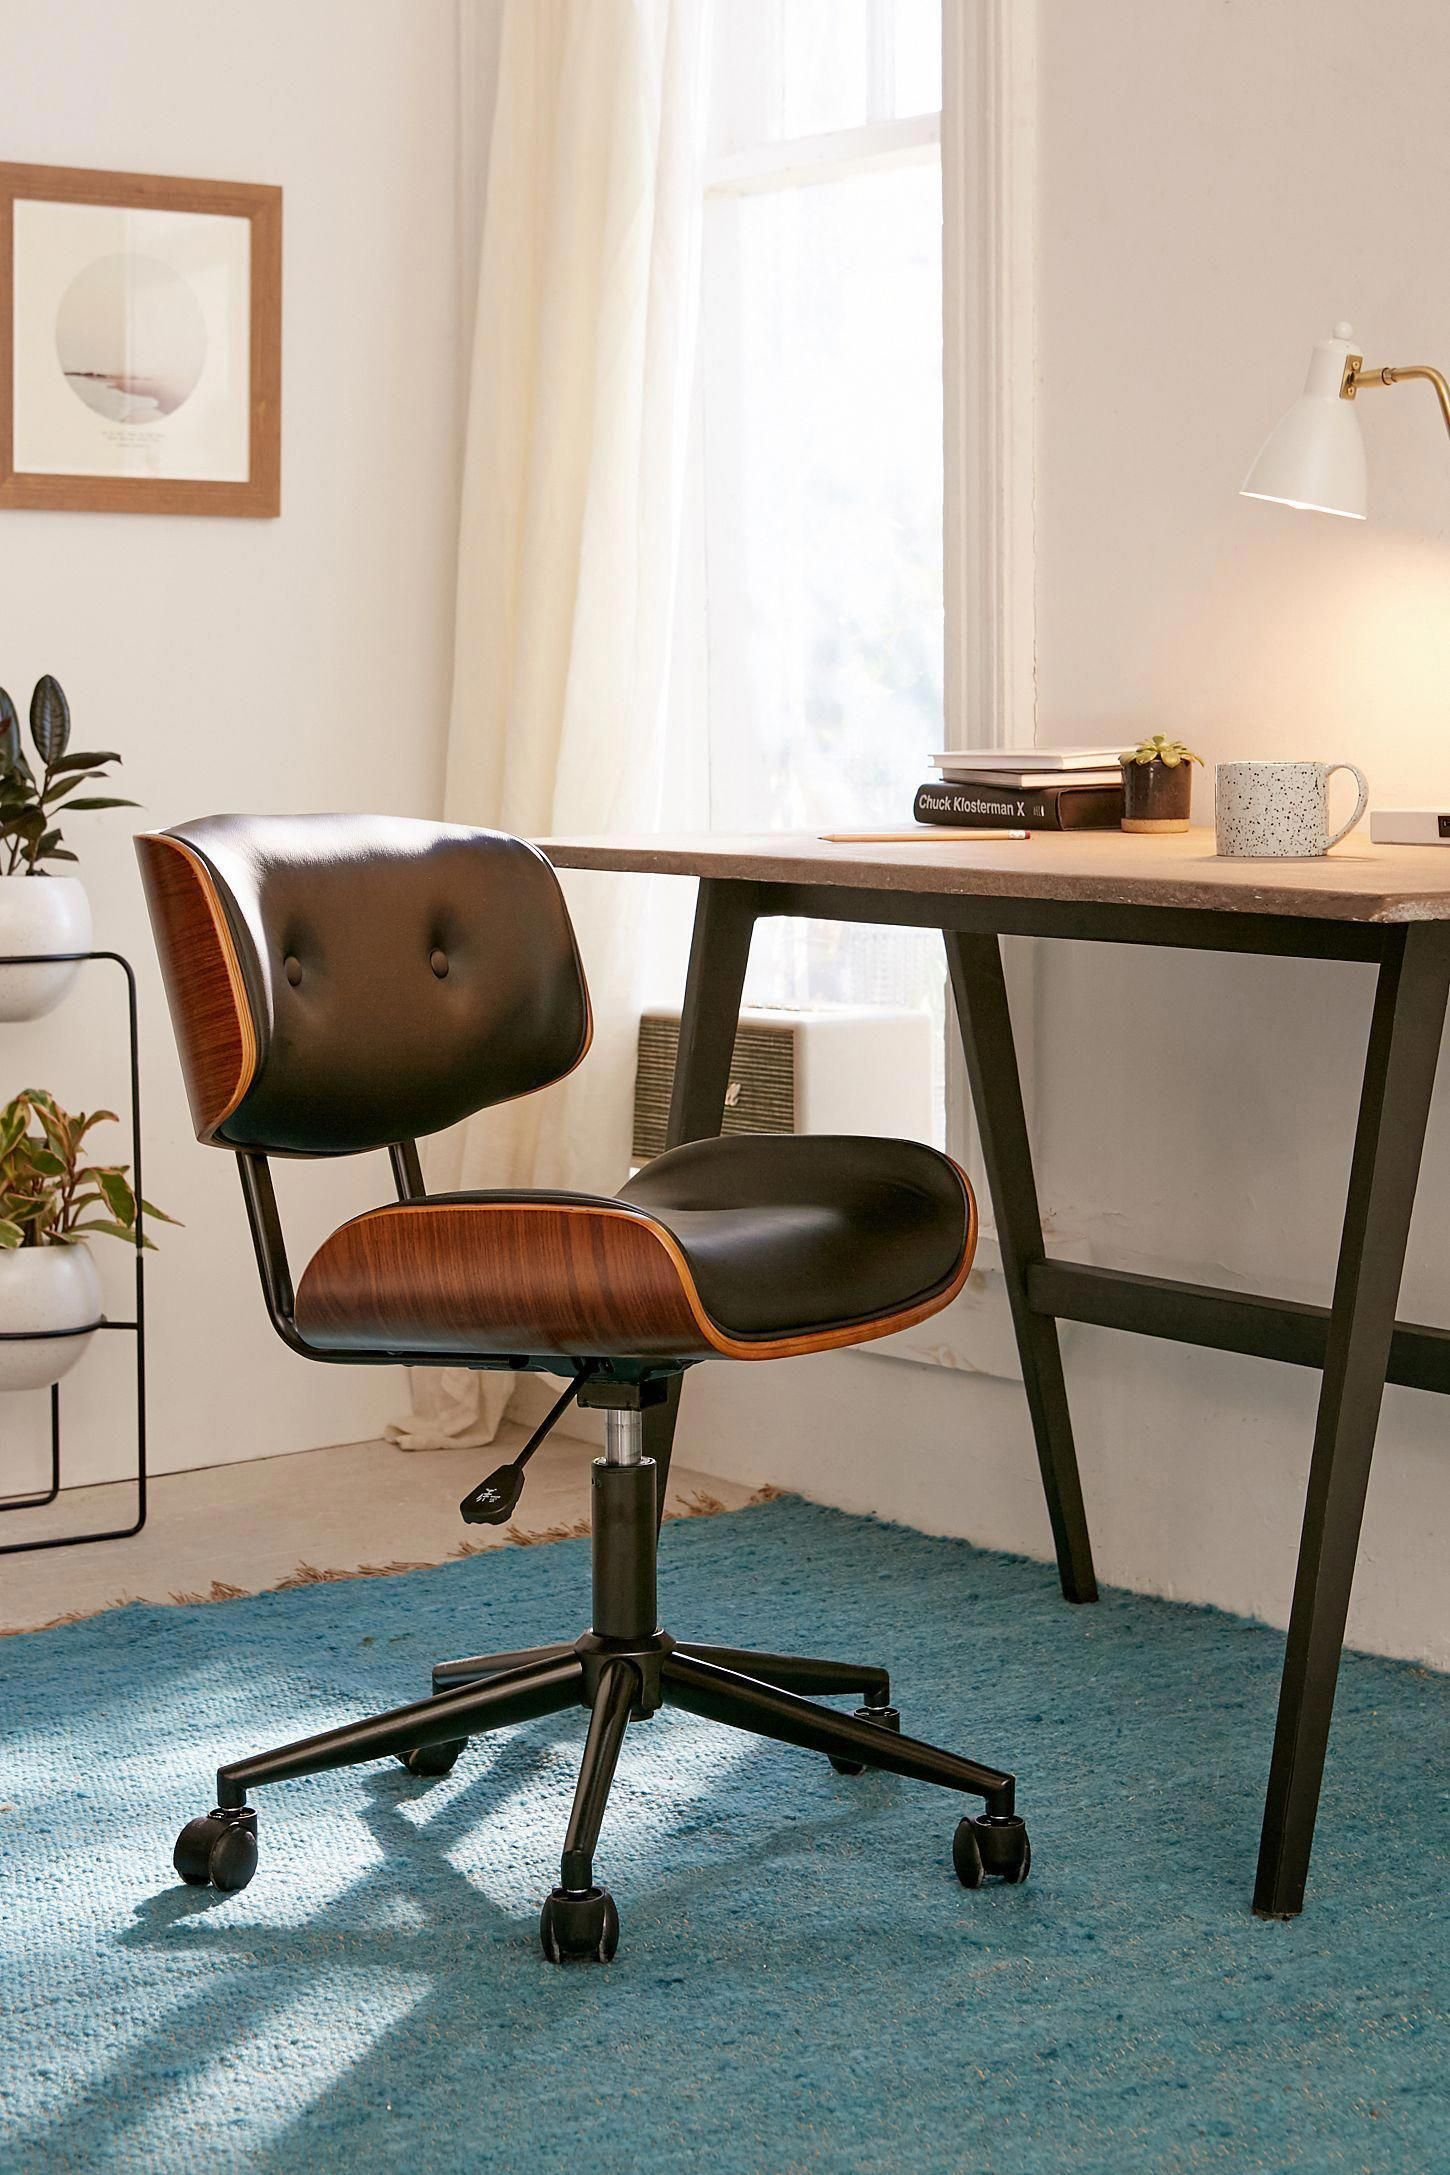 Adjustable Desk Chair in 2020 to work remotely without getting sick